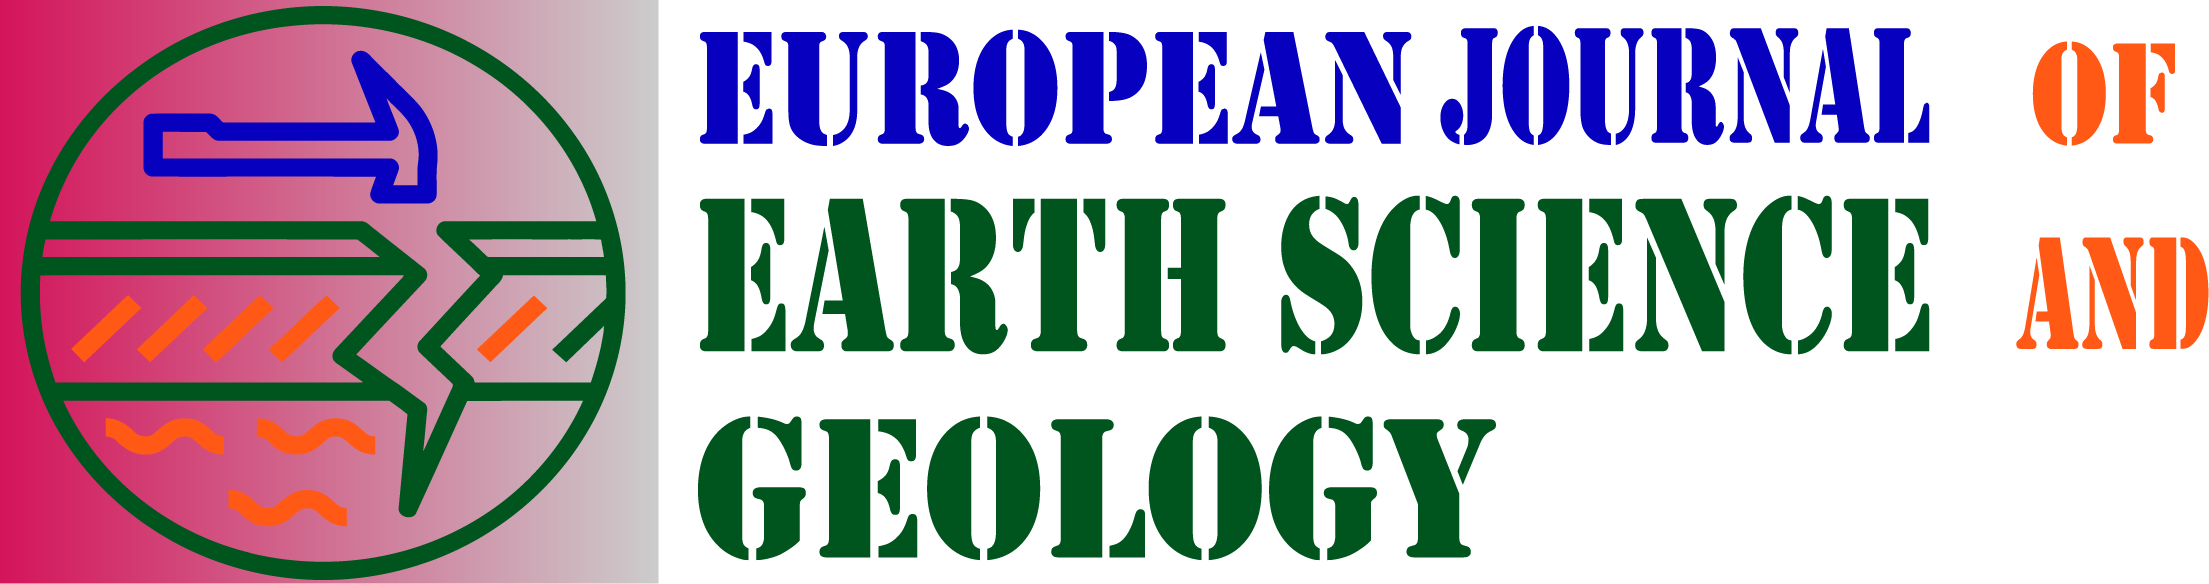 European Journal of Earth Science and Geology (EJESG)